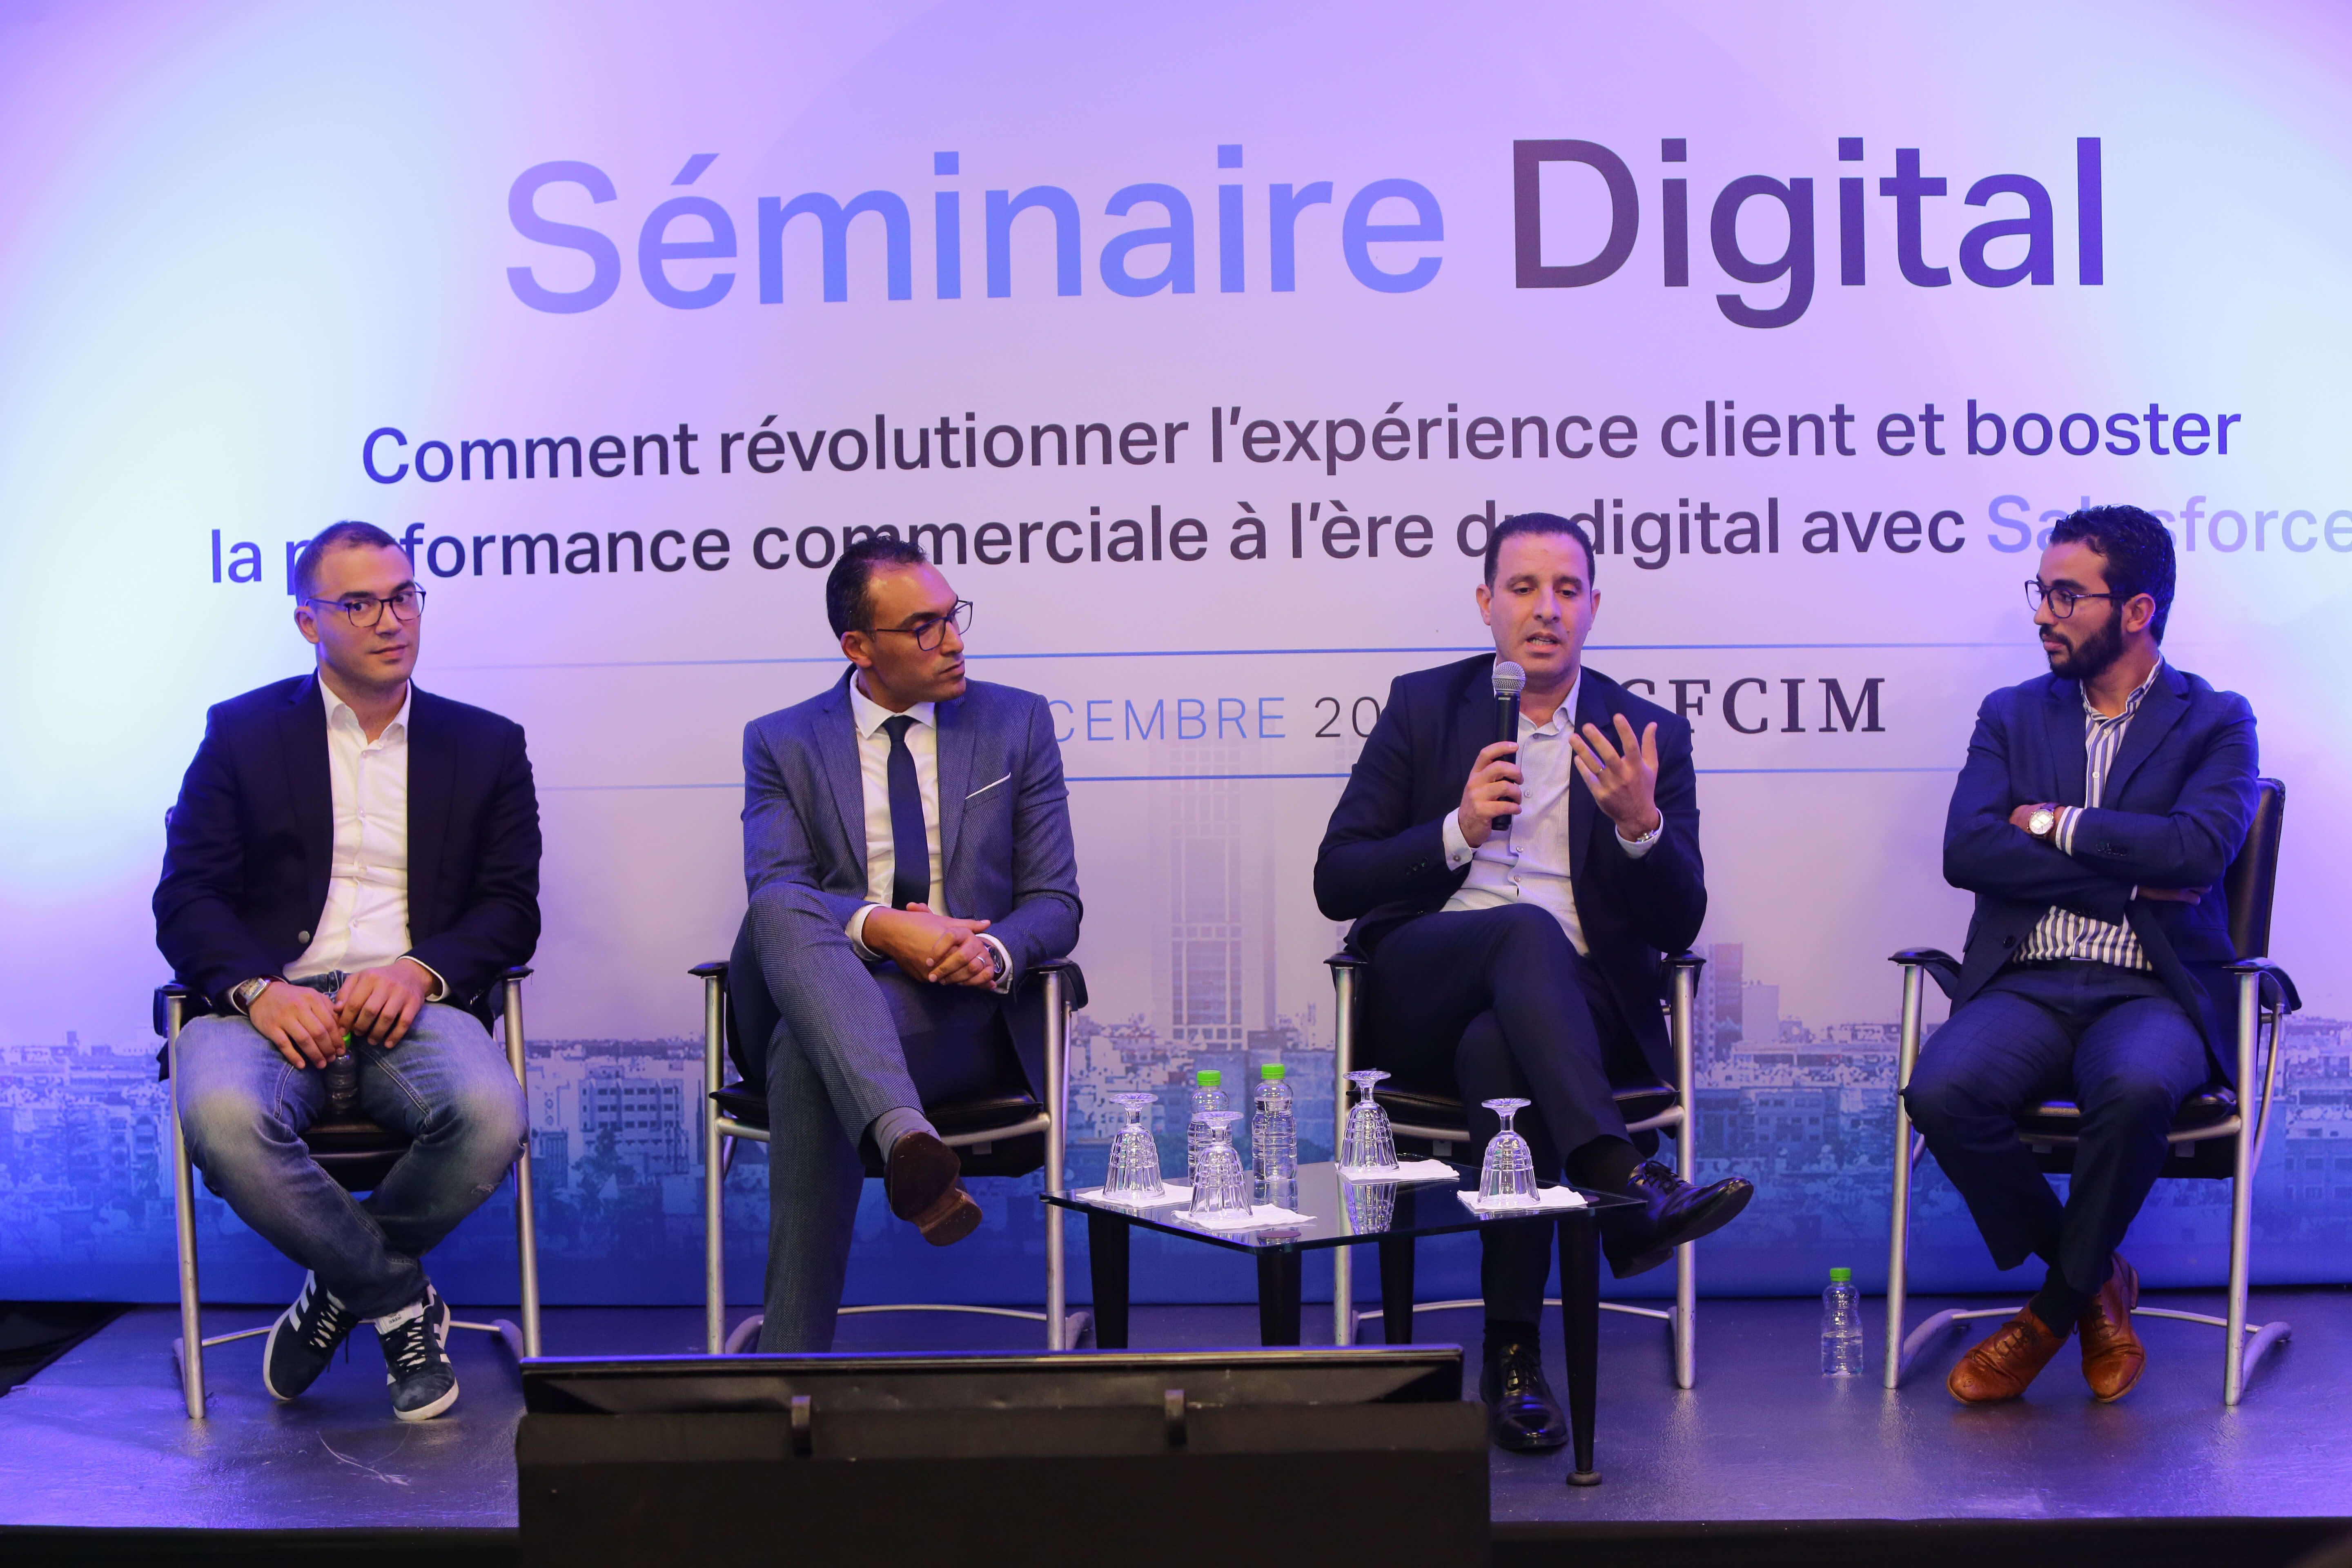 SÉMINAIRE DIGITAL BY NBS CONSULTING & SALESFORCE